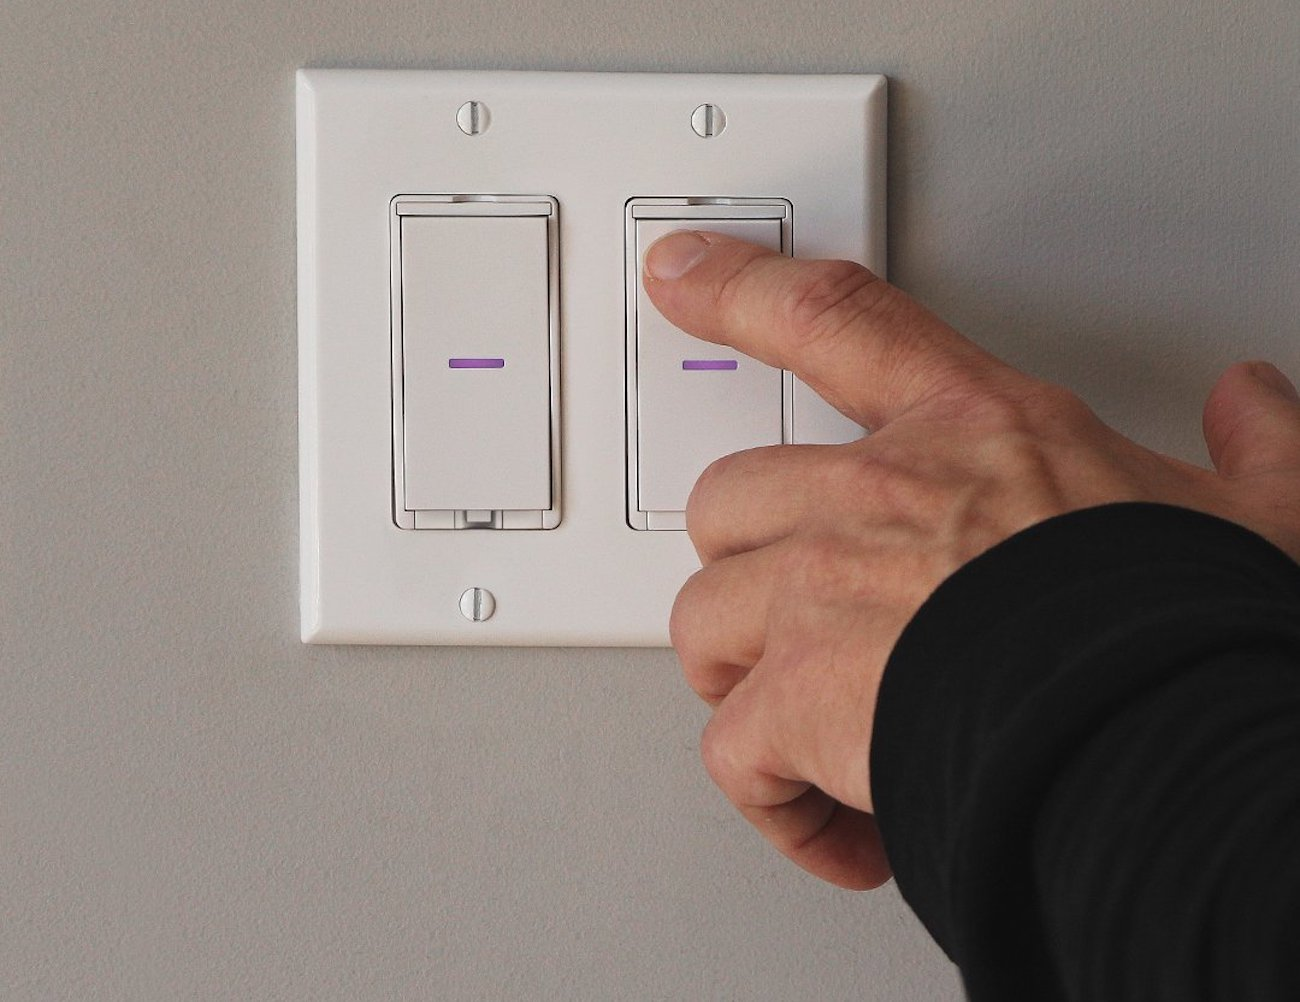 iDevices Smart Wi-Fi Dimmer Switch